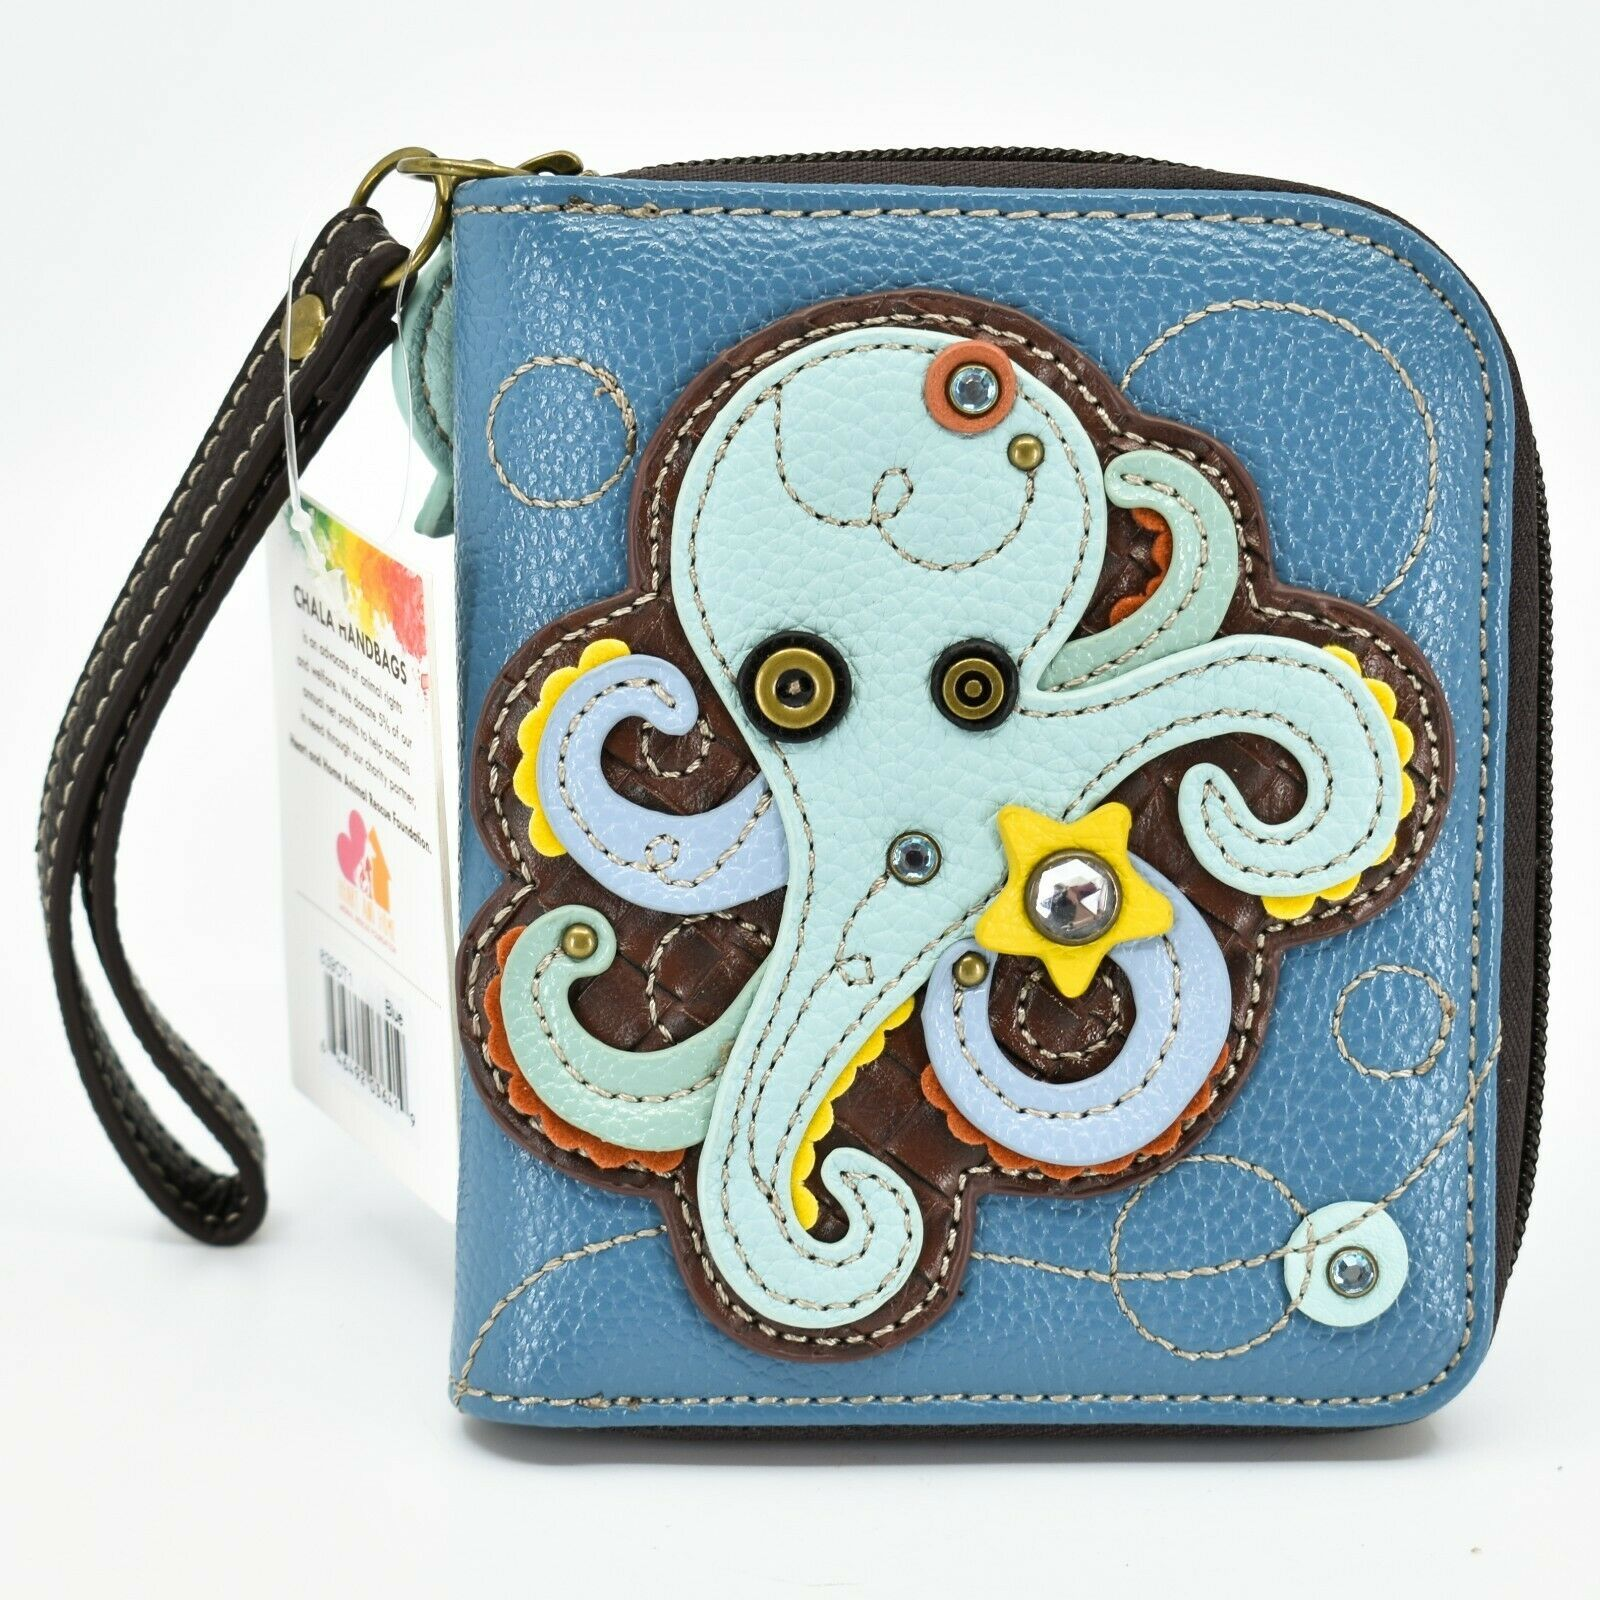 Chala Handbags Faux Leather Whimsical Octopus Blue Zip Around Wristlet Wallet